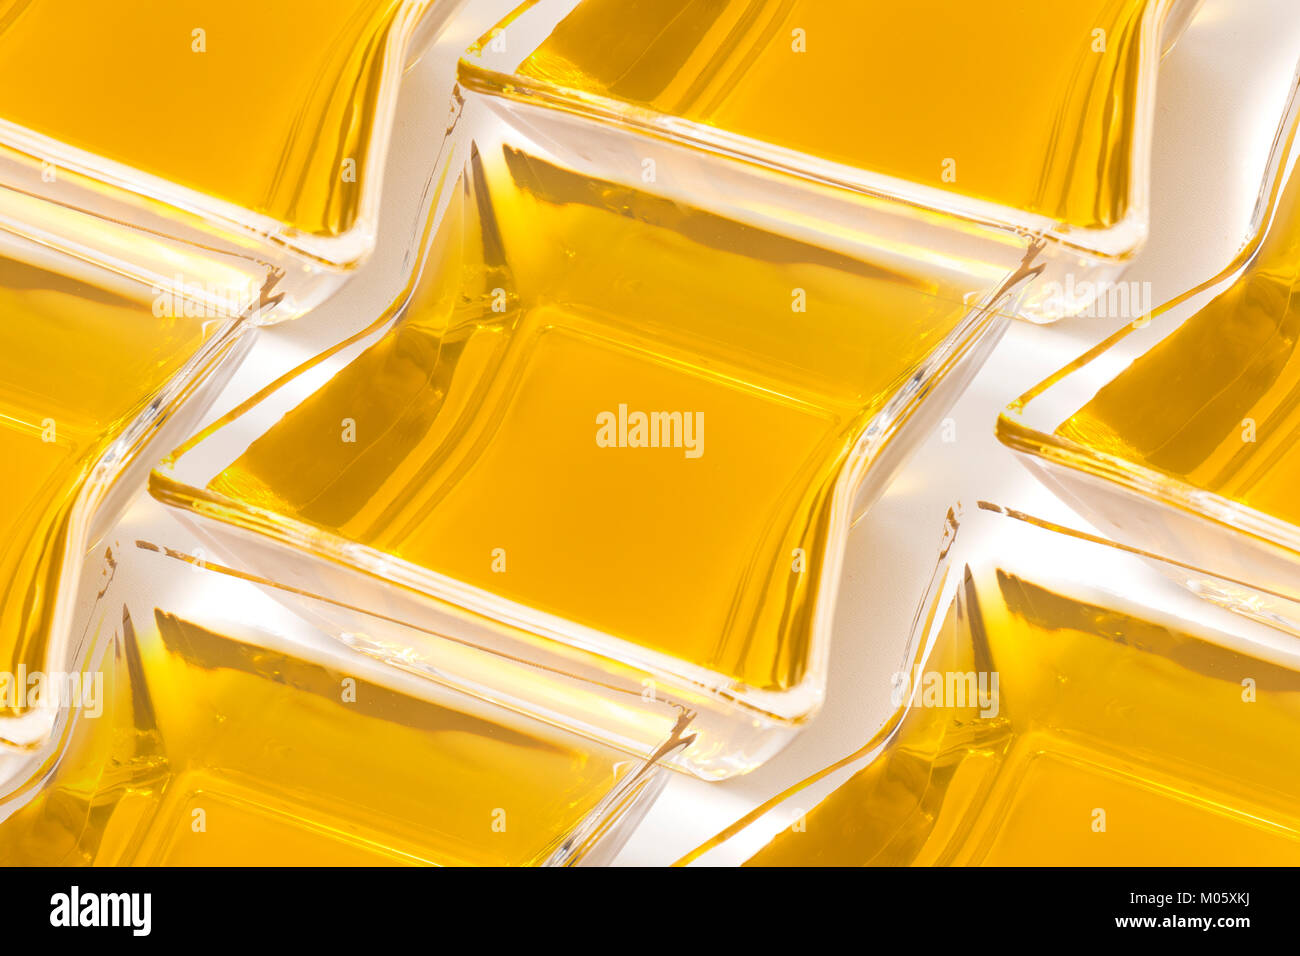 Aligned olive oil glass container  concept. - Stock Image